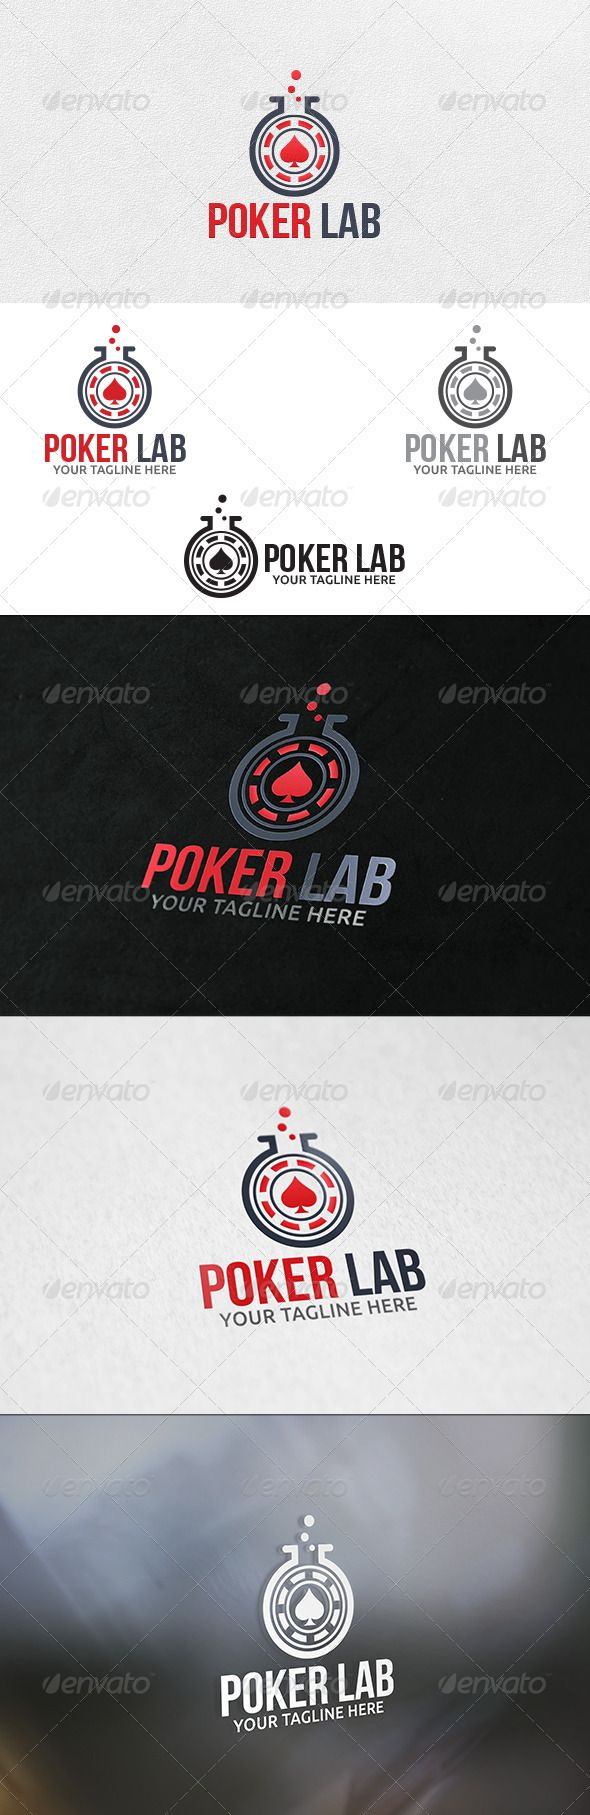 Poker Lab - Logo Template  #GraphicRiver         100% Vector  File Format : EPS   Color Mode : CMYK   Font used : Bebas Neue  Download Link :  .fontsquirrel /fonts/bebas-neue                      Created: 11 December 13                    Graphics Files Included:   Vector EPS                   Layered:   No                   Minimum Adobe CS Version:   CS                   Resolution:   Resizable             Tags      ace #black jack